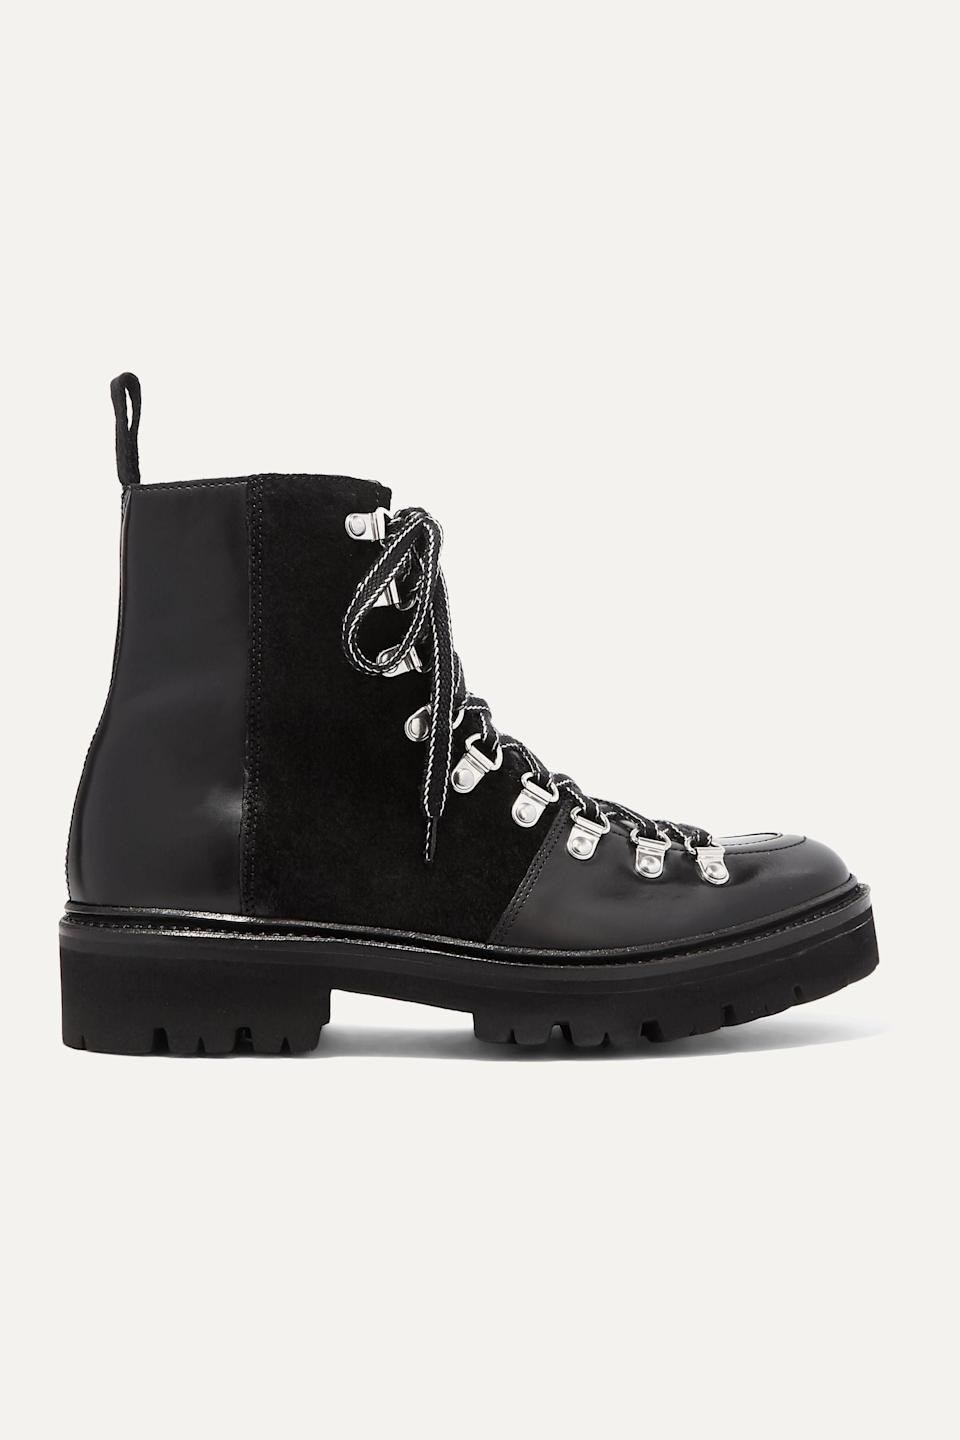 """<p>""""Like I said, I'll take any flat boot I can get. <span>Grenson's Black Nanette Leather and Suede Ankle Boots</span> ($400) are so well made, and they look pretty luxe too, as proven by the brand's fanbase of influencers and supermodels who are getting in on <a href=""""https://www.popsugar.com/fashion/boot-trends-fall-2020-47796190"""" class=""""link rapid-noclick-resp"""" rel=""""nofollow noopener"""" target=""""_blank"""" data-ylk=""""slk:the hiking-boot trend"""">the hiking-boot trend</a>.""""</p>"""